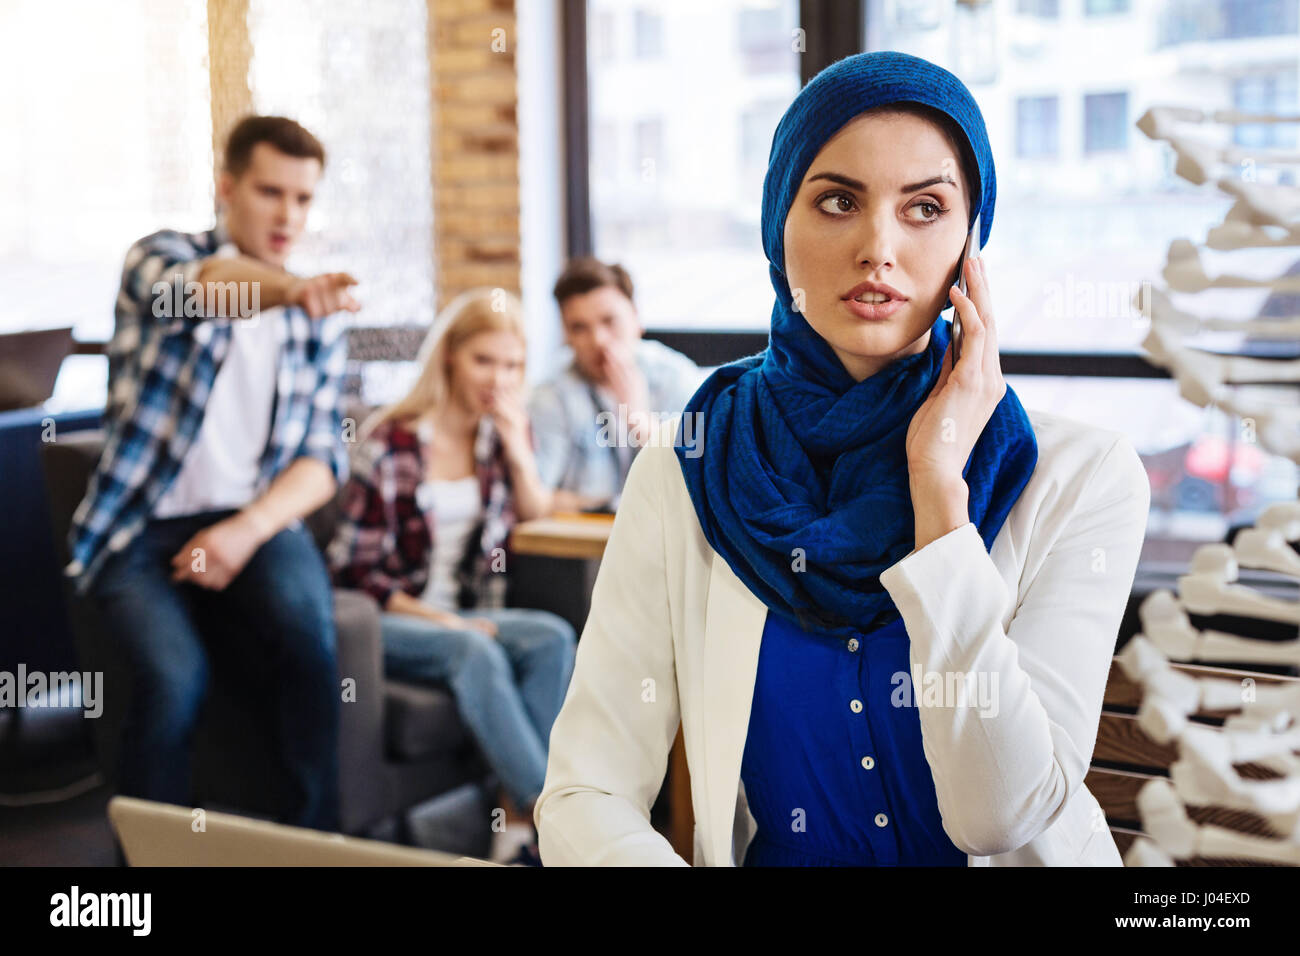 PlGroup of students abusing pleasant muslim female student - Stock Image